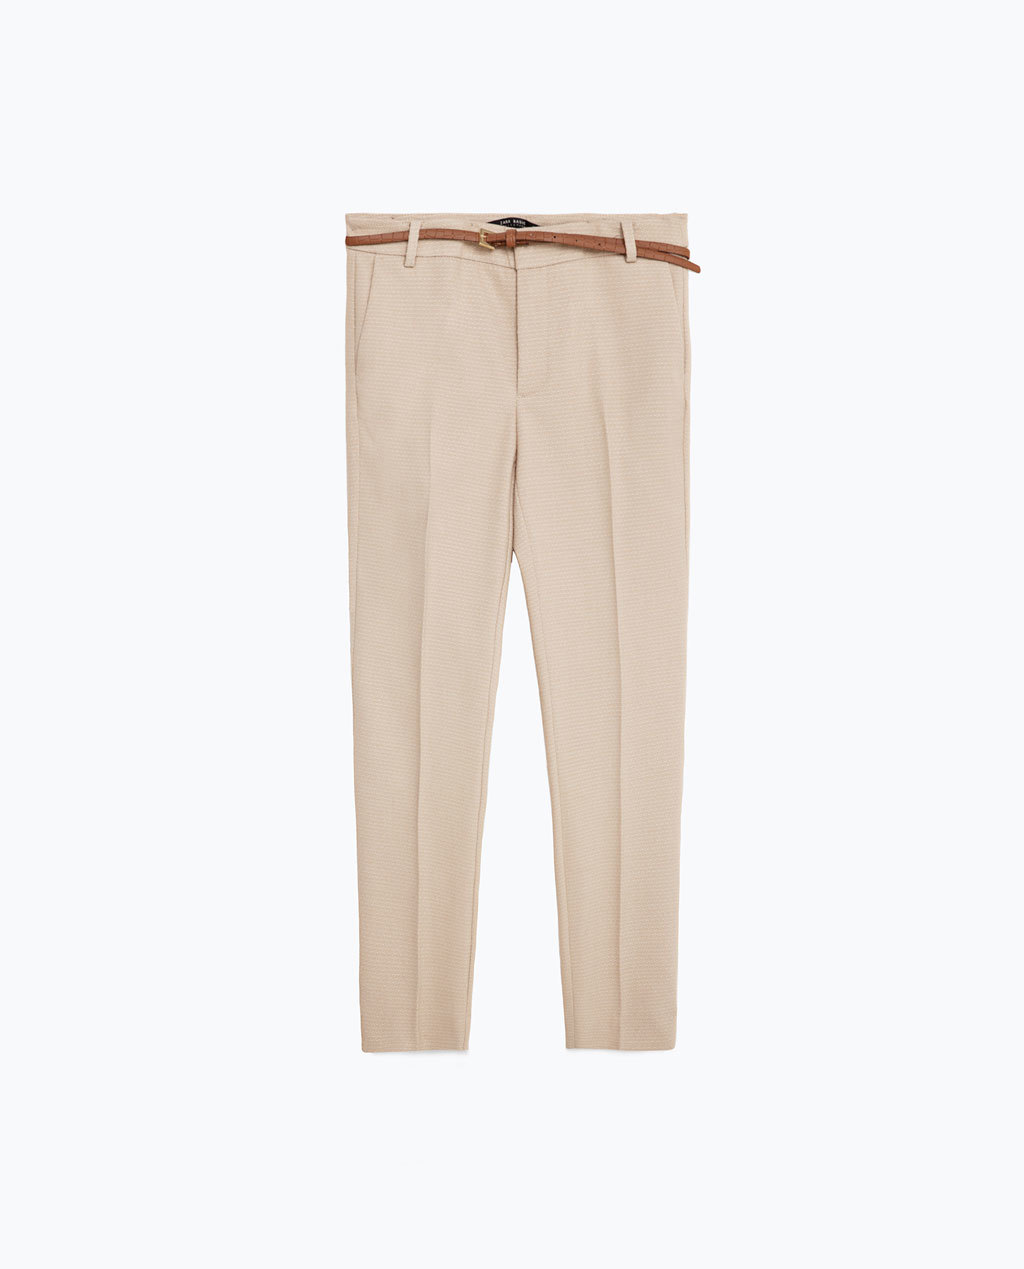 Chinos - pattern: plain; waist: mid/regular rise; predominant colour: stone; occasions: casual, creative work; length: ankle length; style: chino; fibres: cotton - 100%; texture group: cotton feel fabrics; fit: slim leg; pattern type: fabric; season: s/s 2016; wardrobe: basic